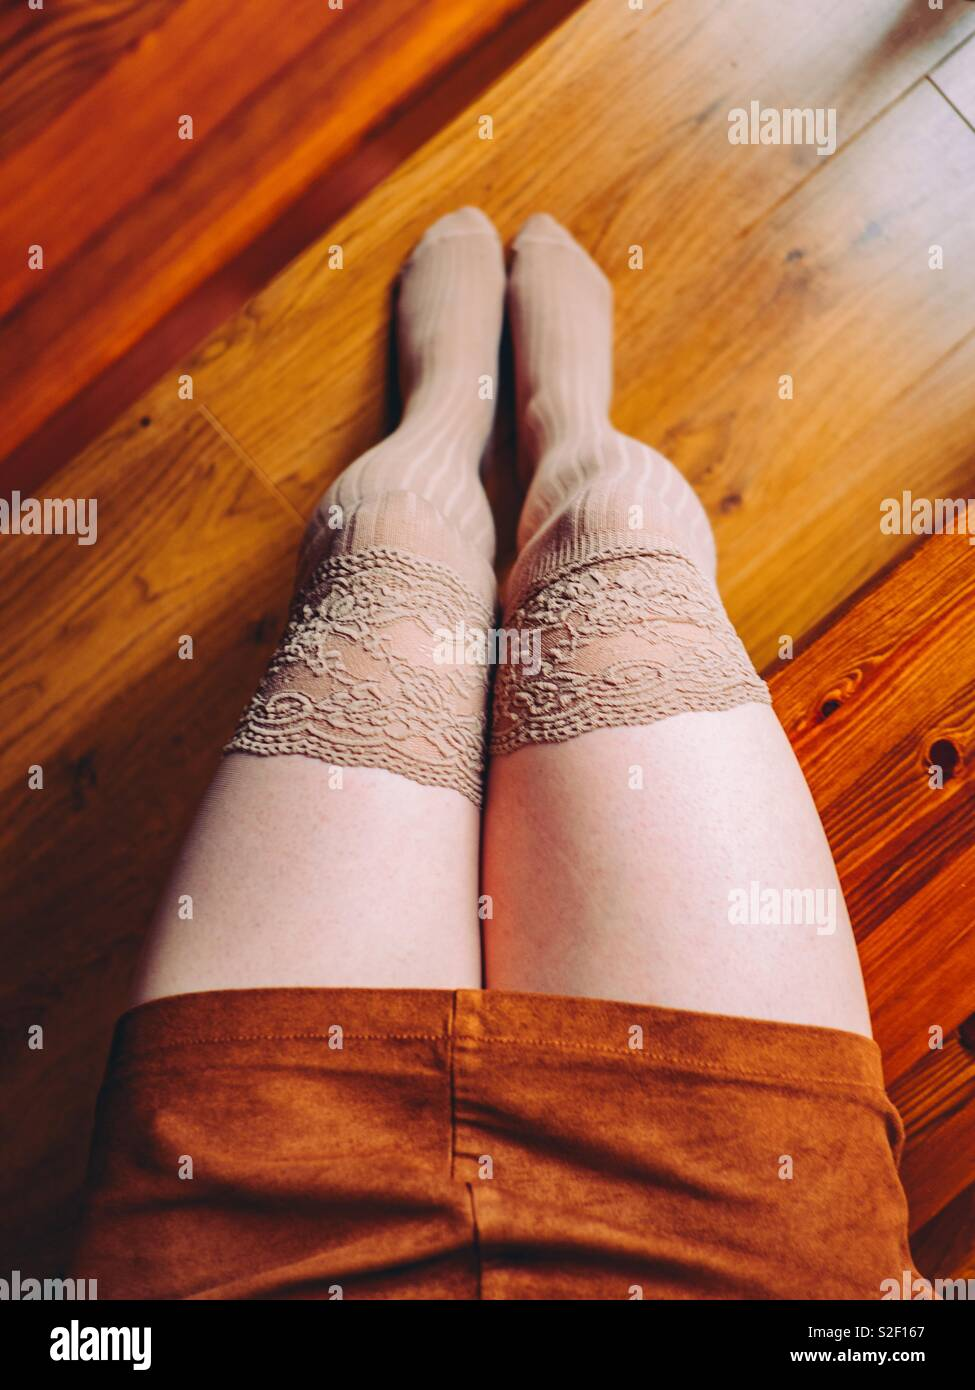 Woman wearing over the knee socks Stock Photo